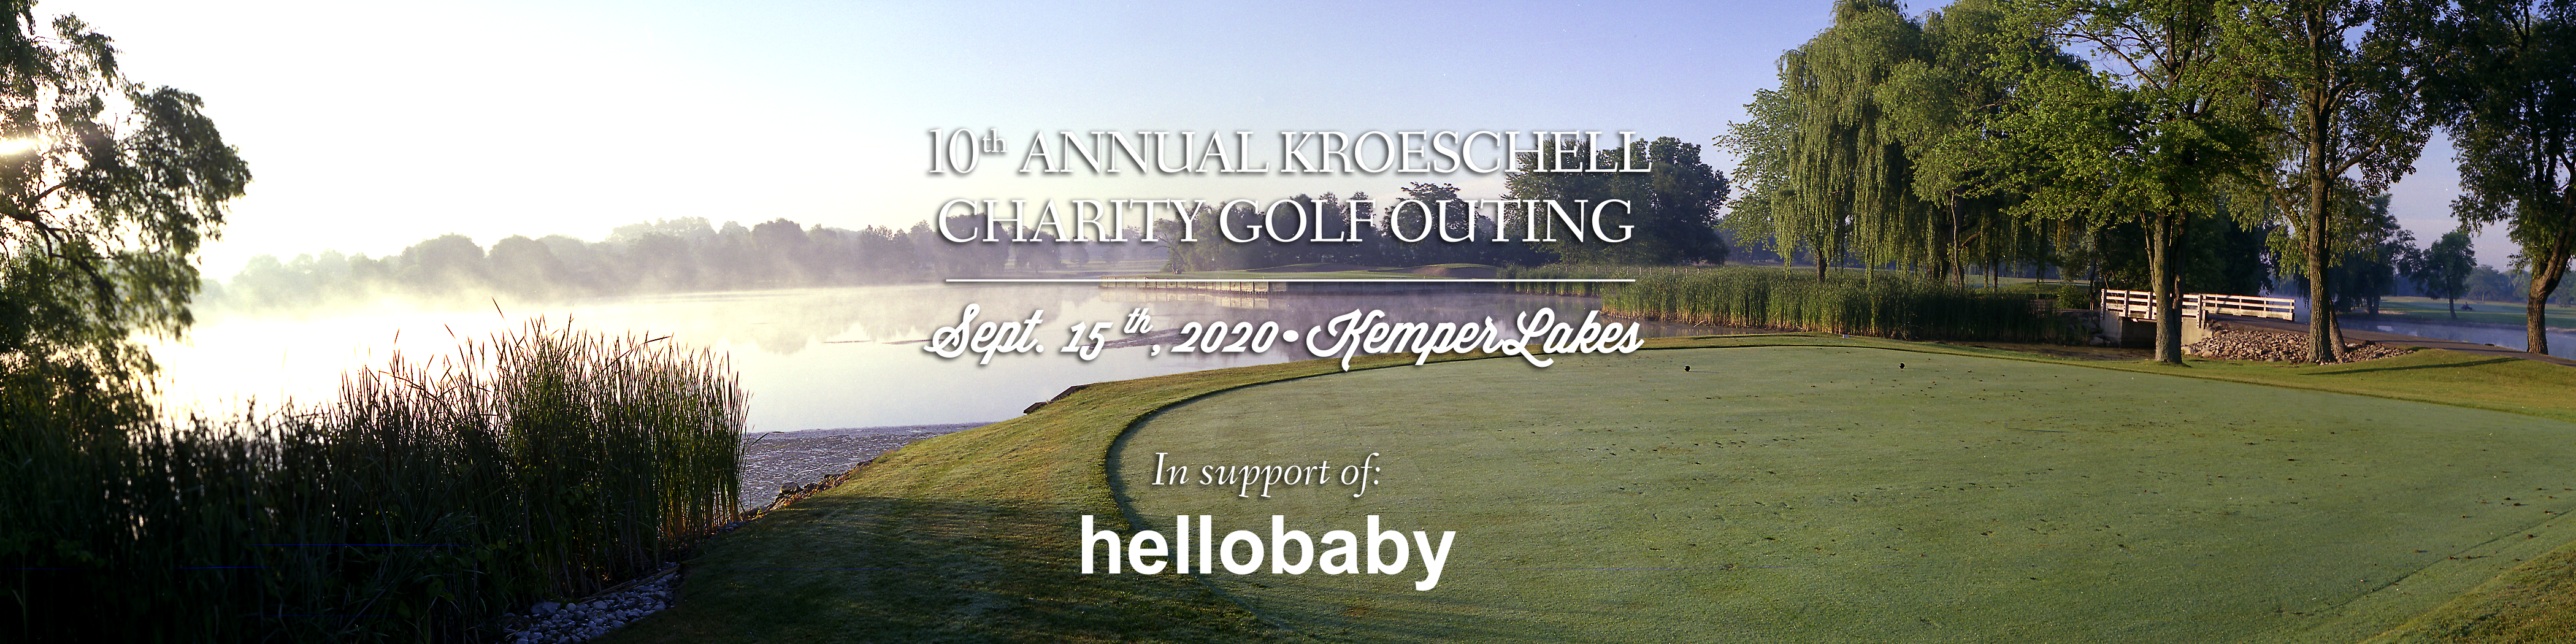 10th Annual Kroeschell Charity Golf Outing logo